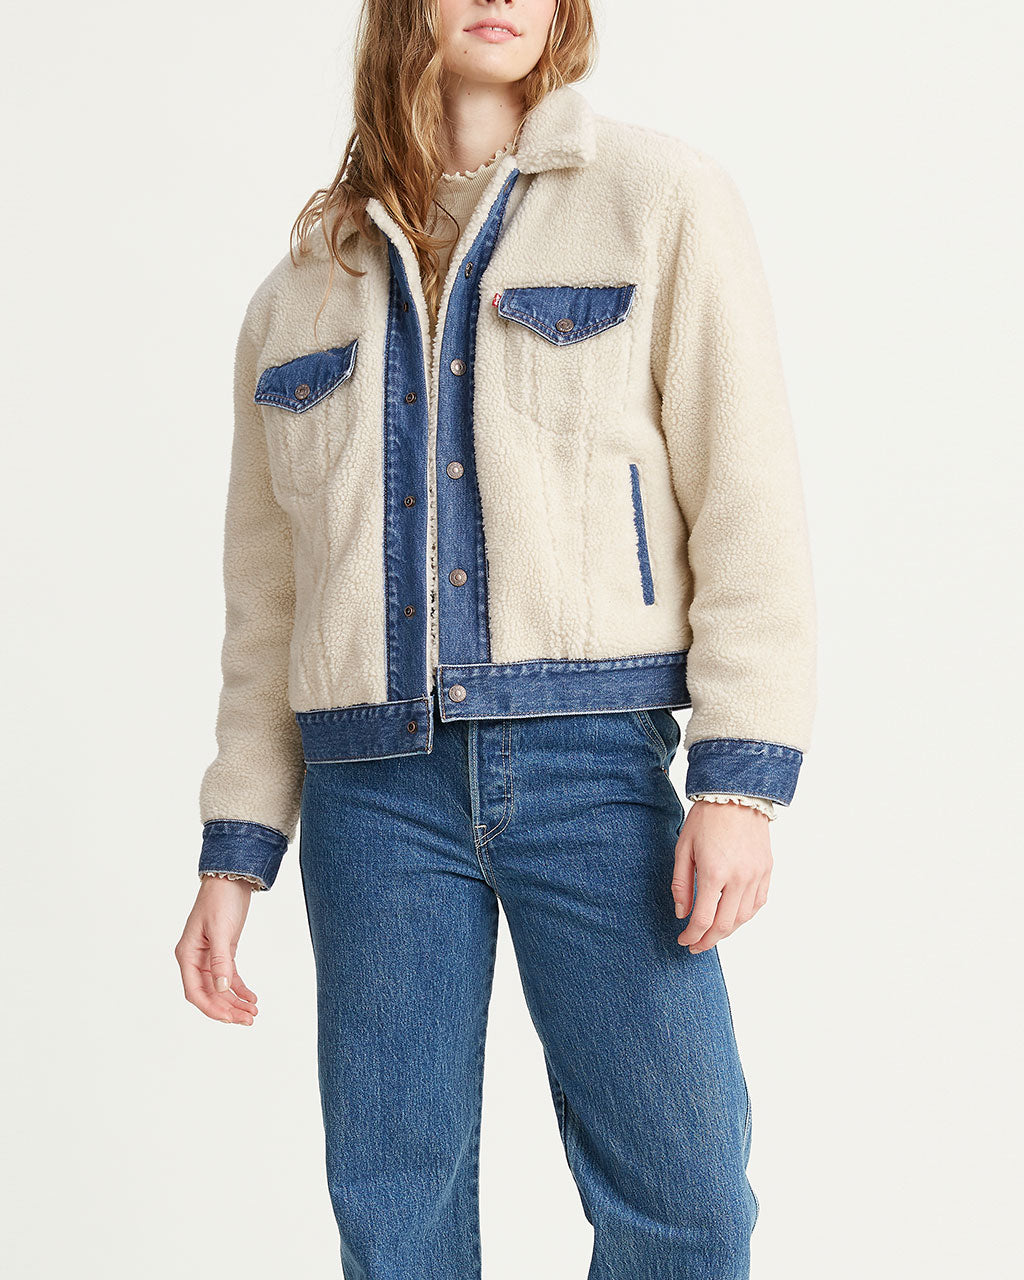 model shown wearing a white sherpa jacket with denim trim